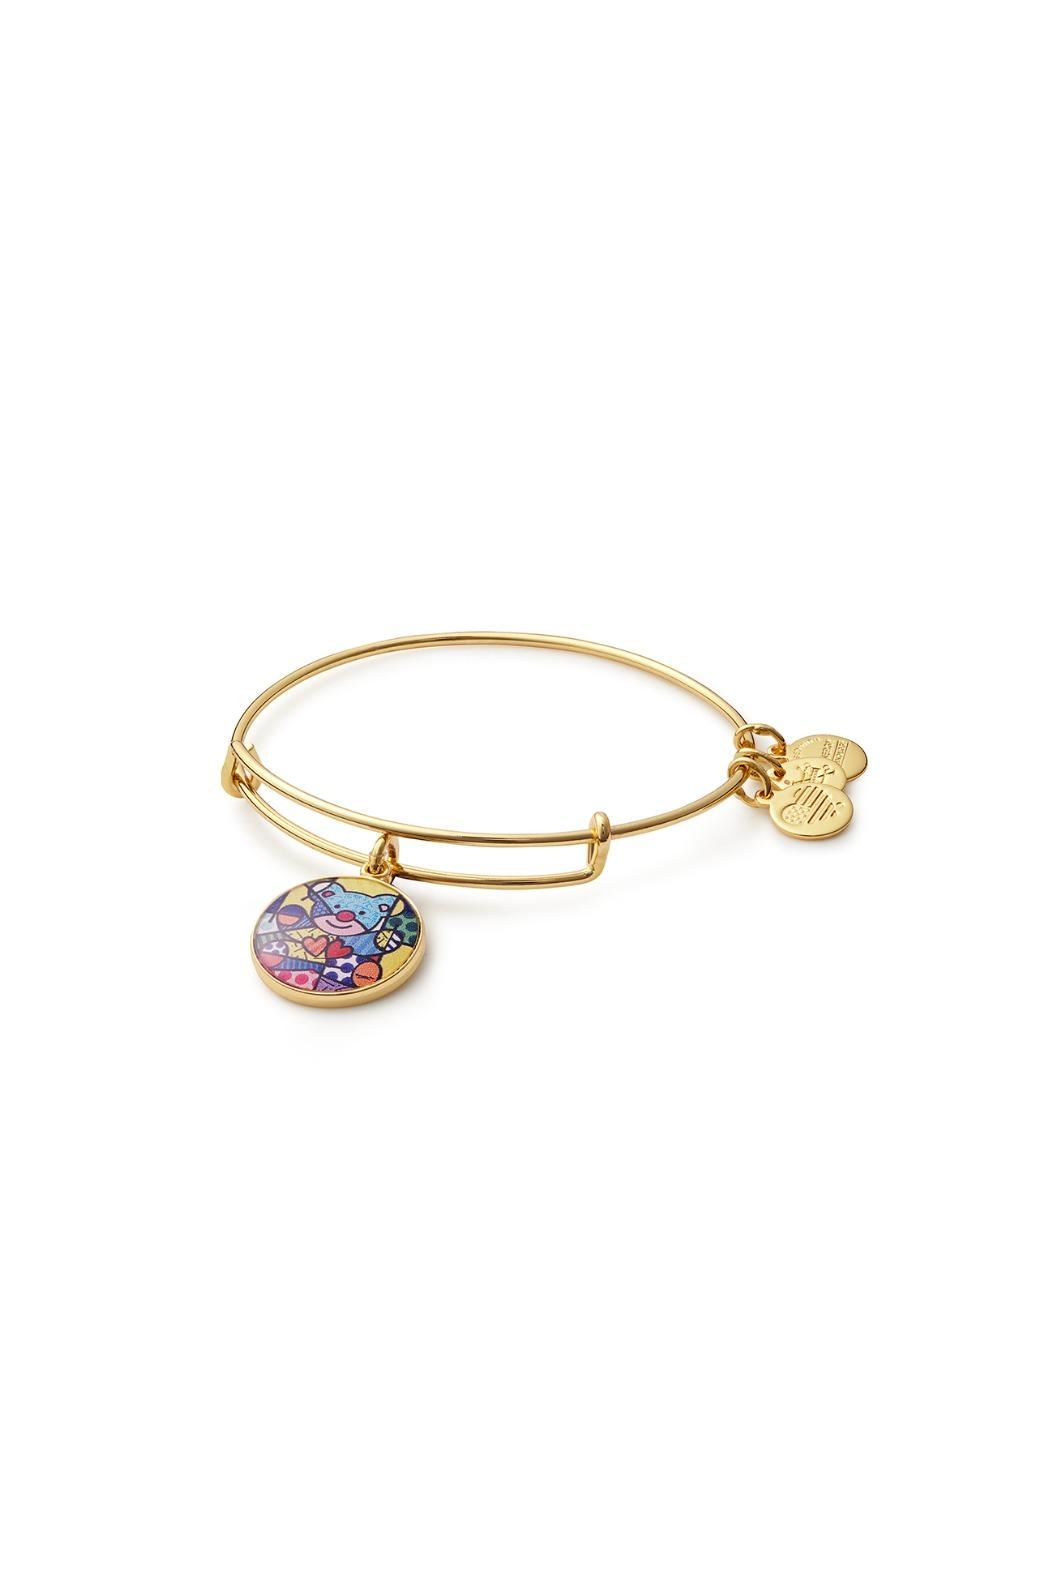 alex and ani friendship bracelet from new york by